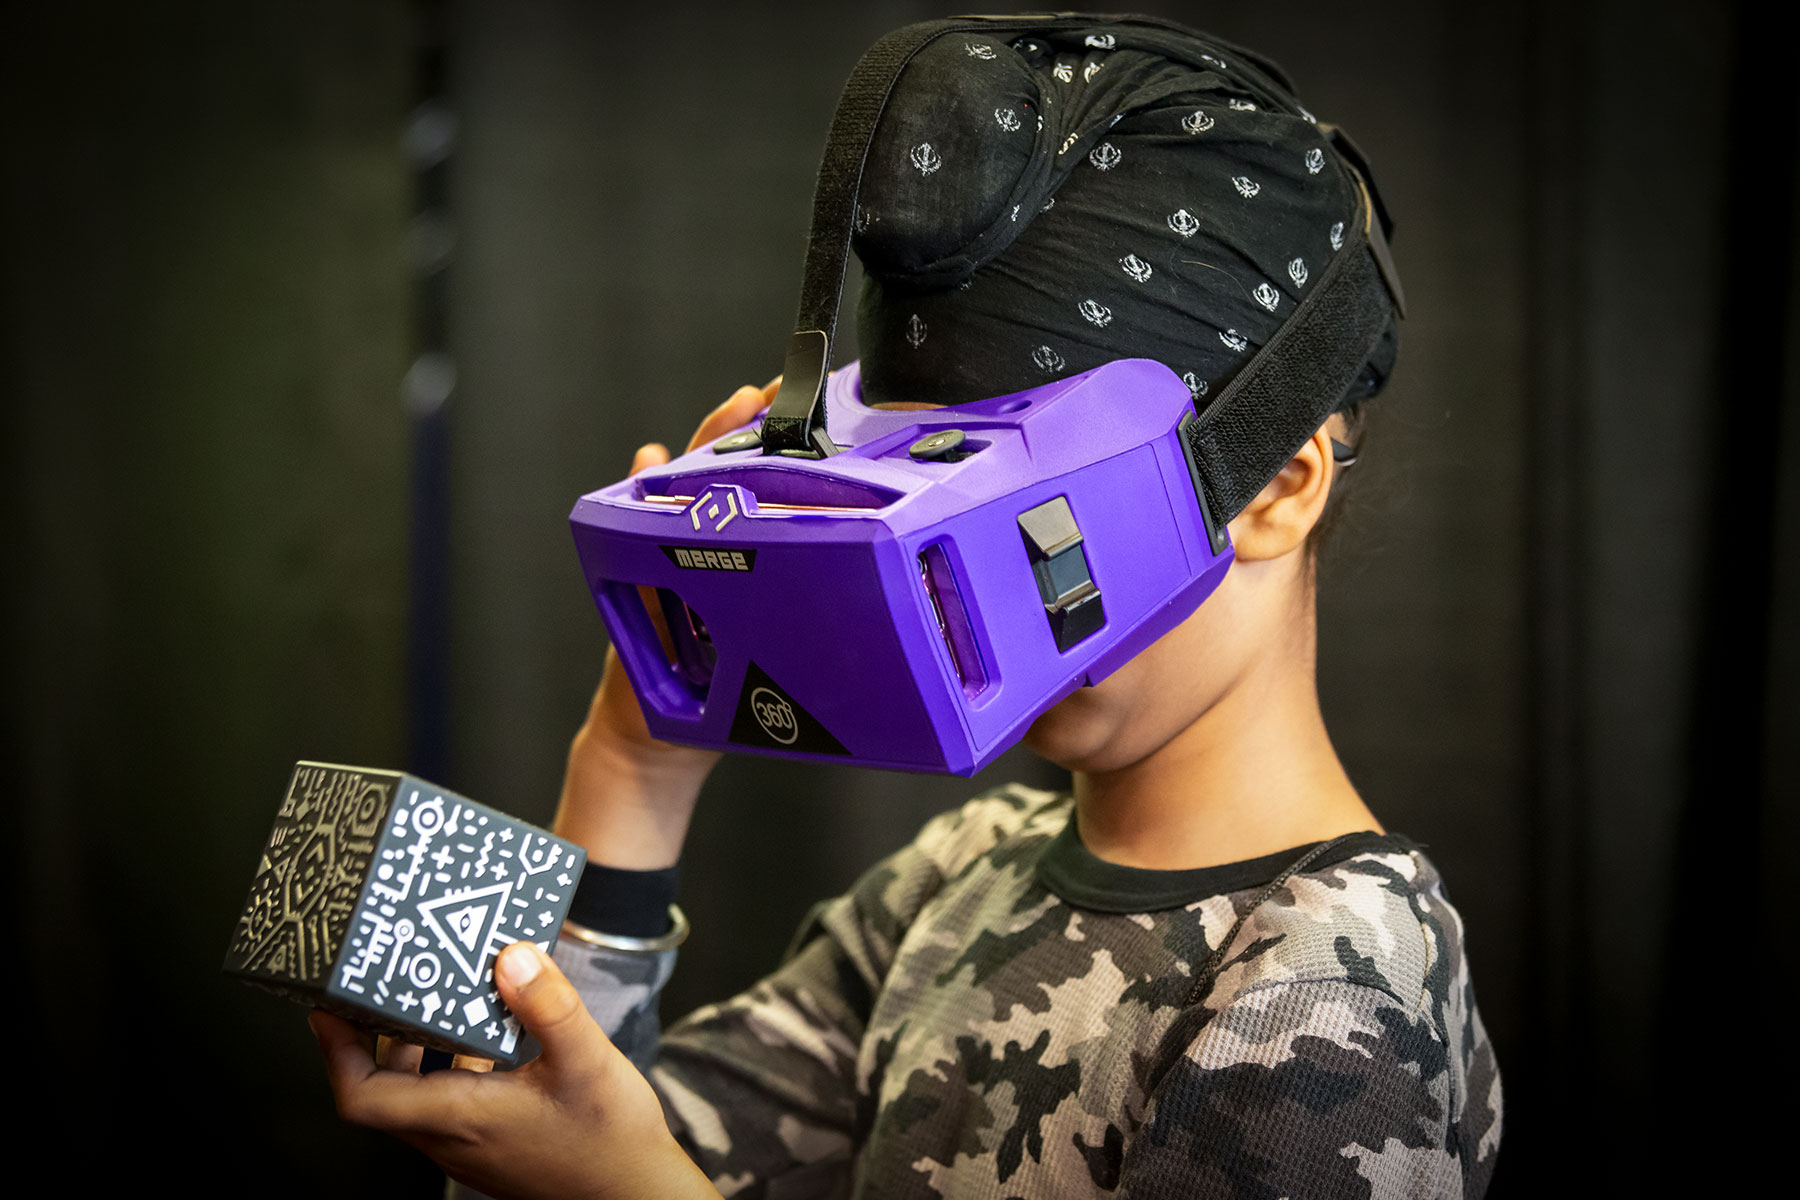 A youngster interacts with virtual reality